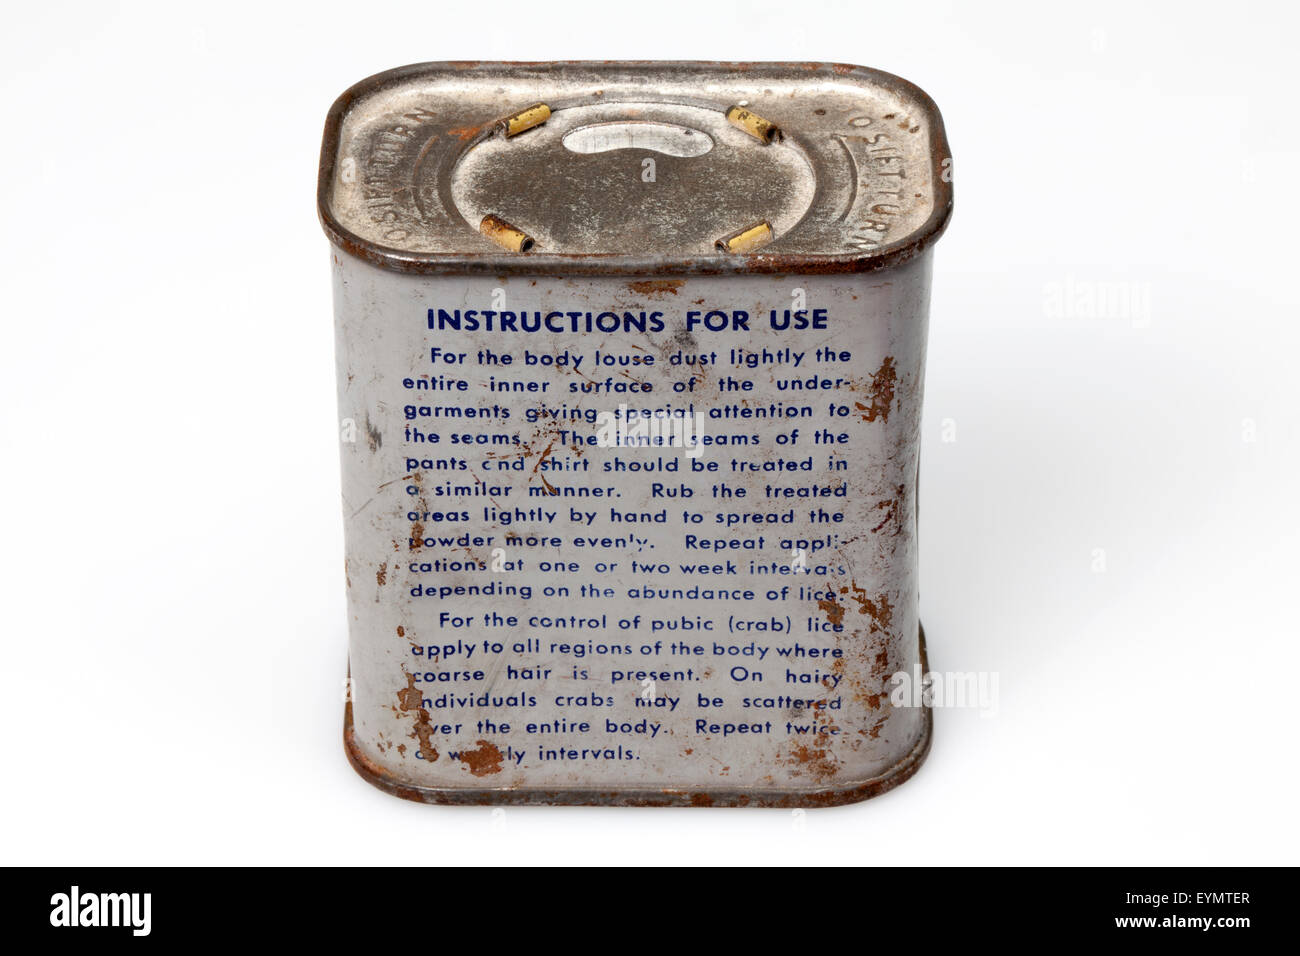 American insecticide for Prisoner of war, 2nd world war - Stock Image